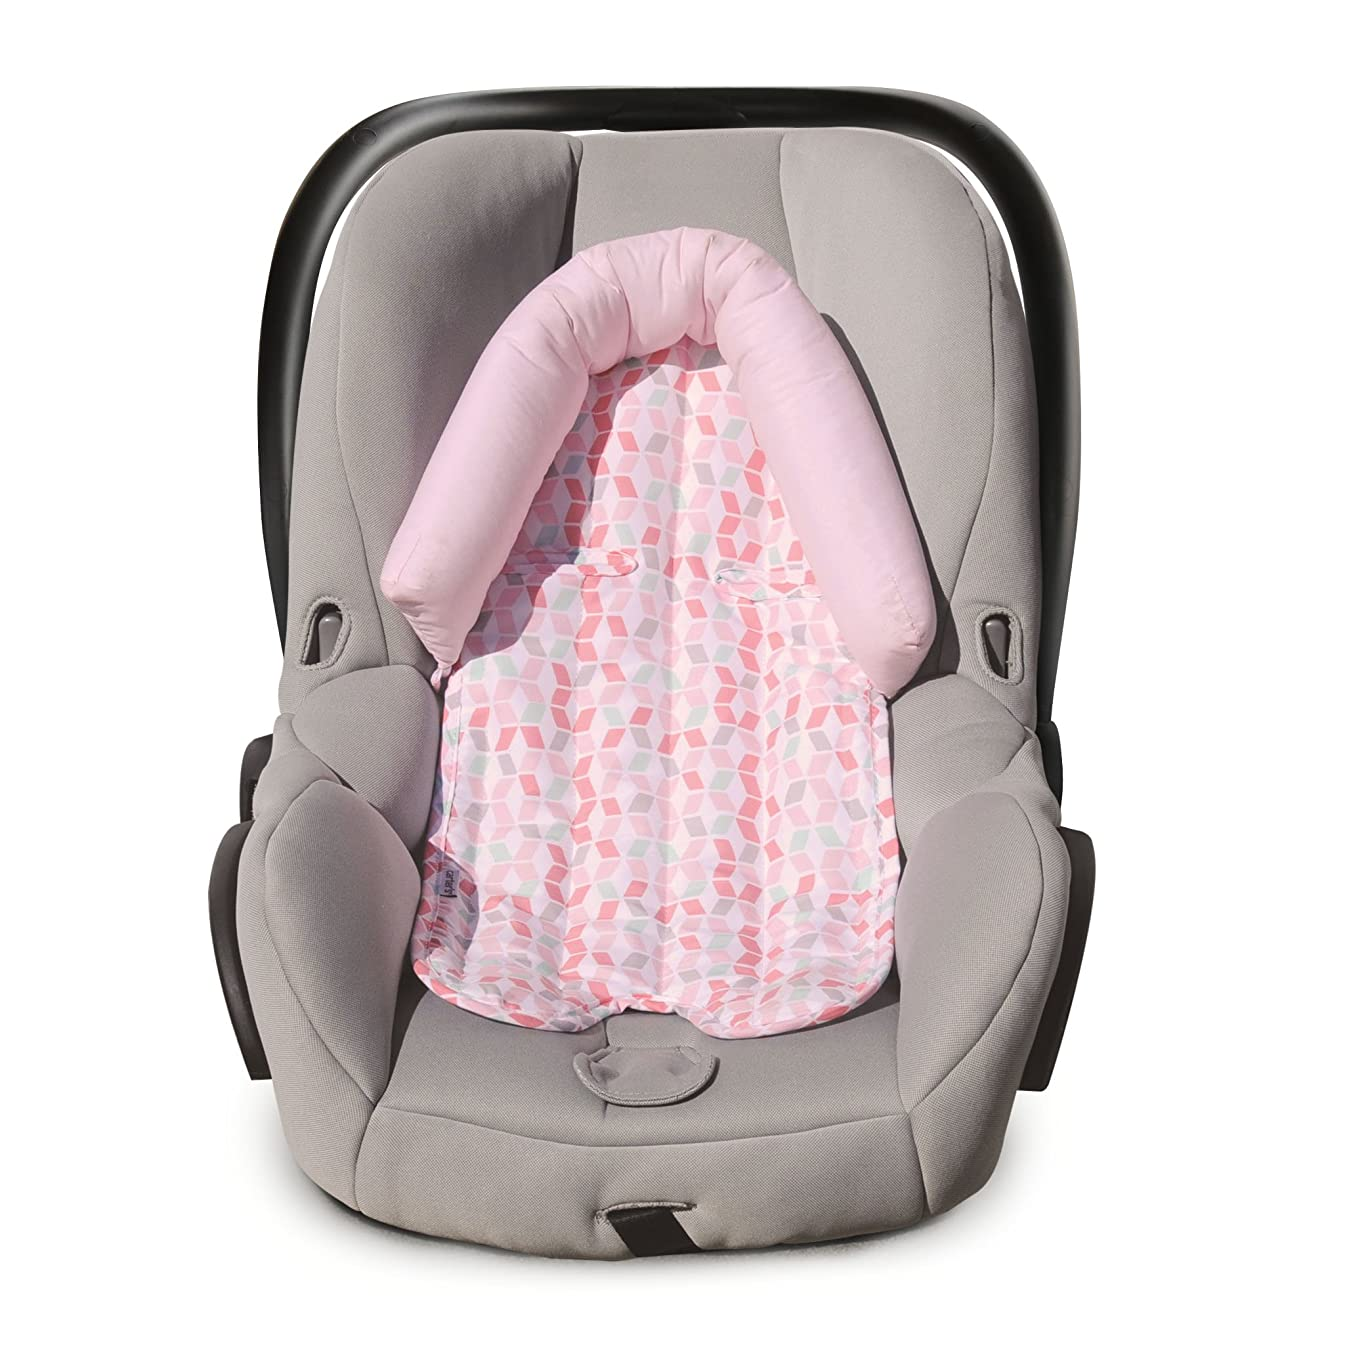 Carter's Infant Head Support for Carseats, Stollers and Swings, Lattice, Pink/White